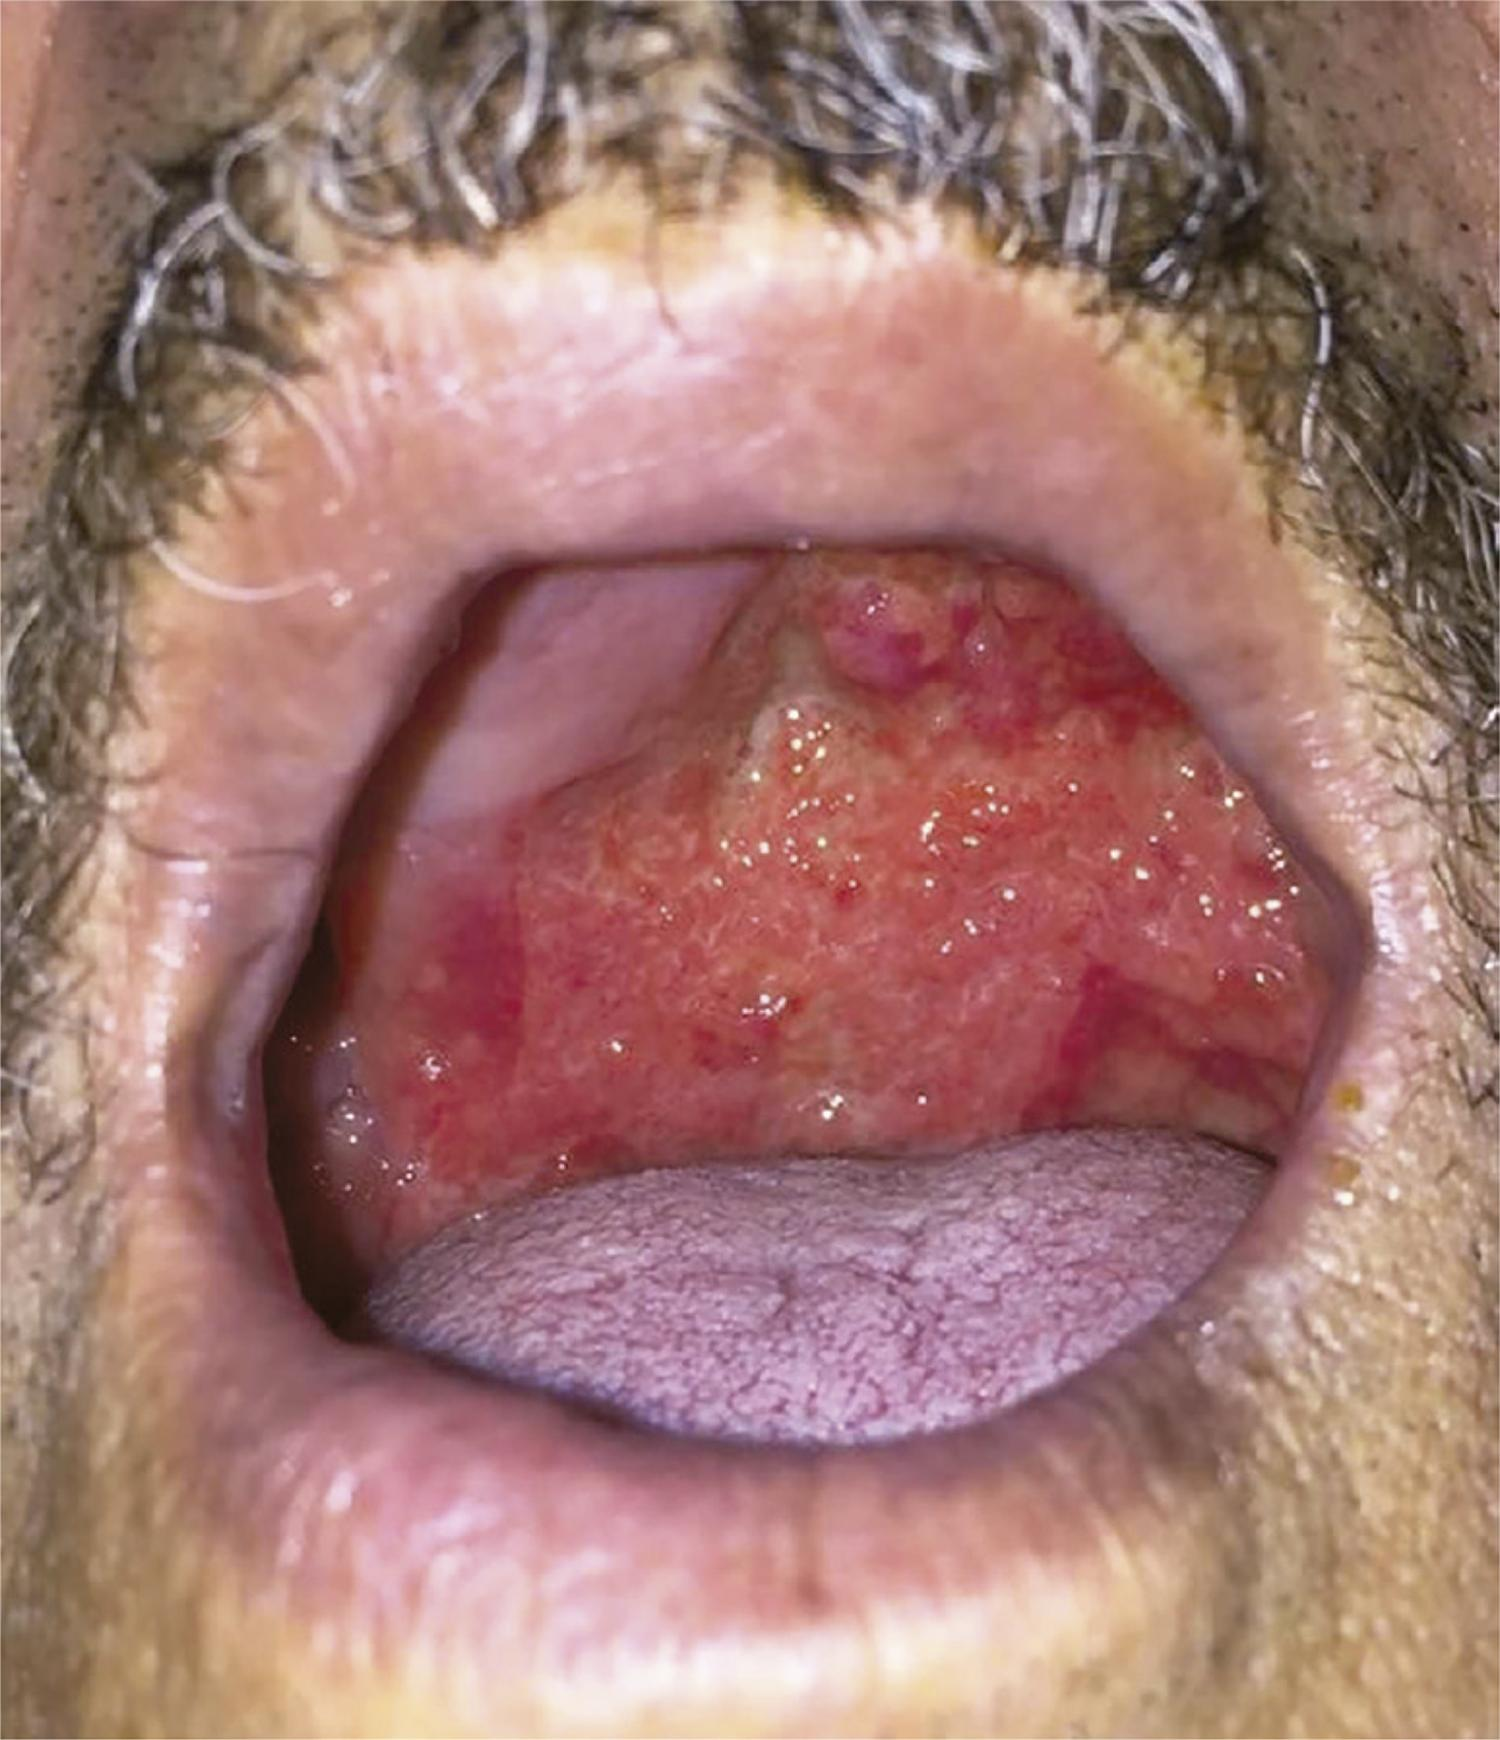 Infiltrative oral lesion, painful and smelly, similar to moriform stomatitis, with an irregular hyperemic surface located on the palate.